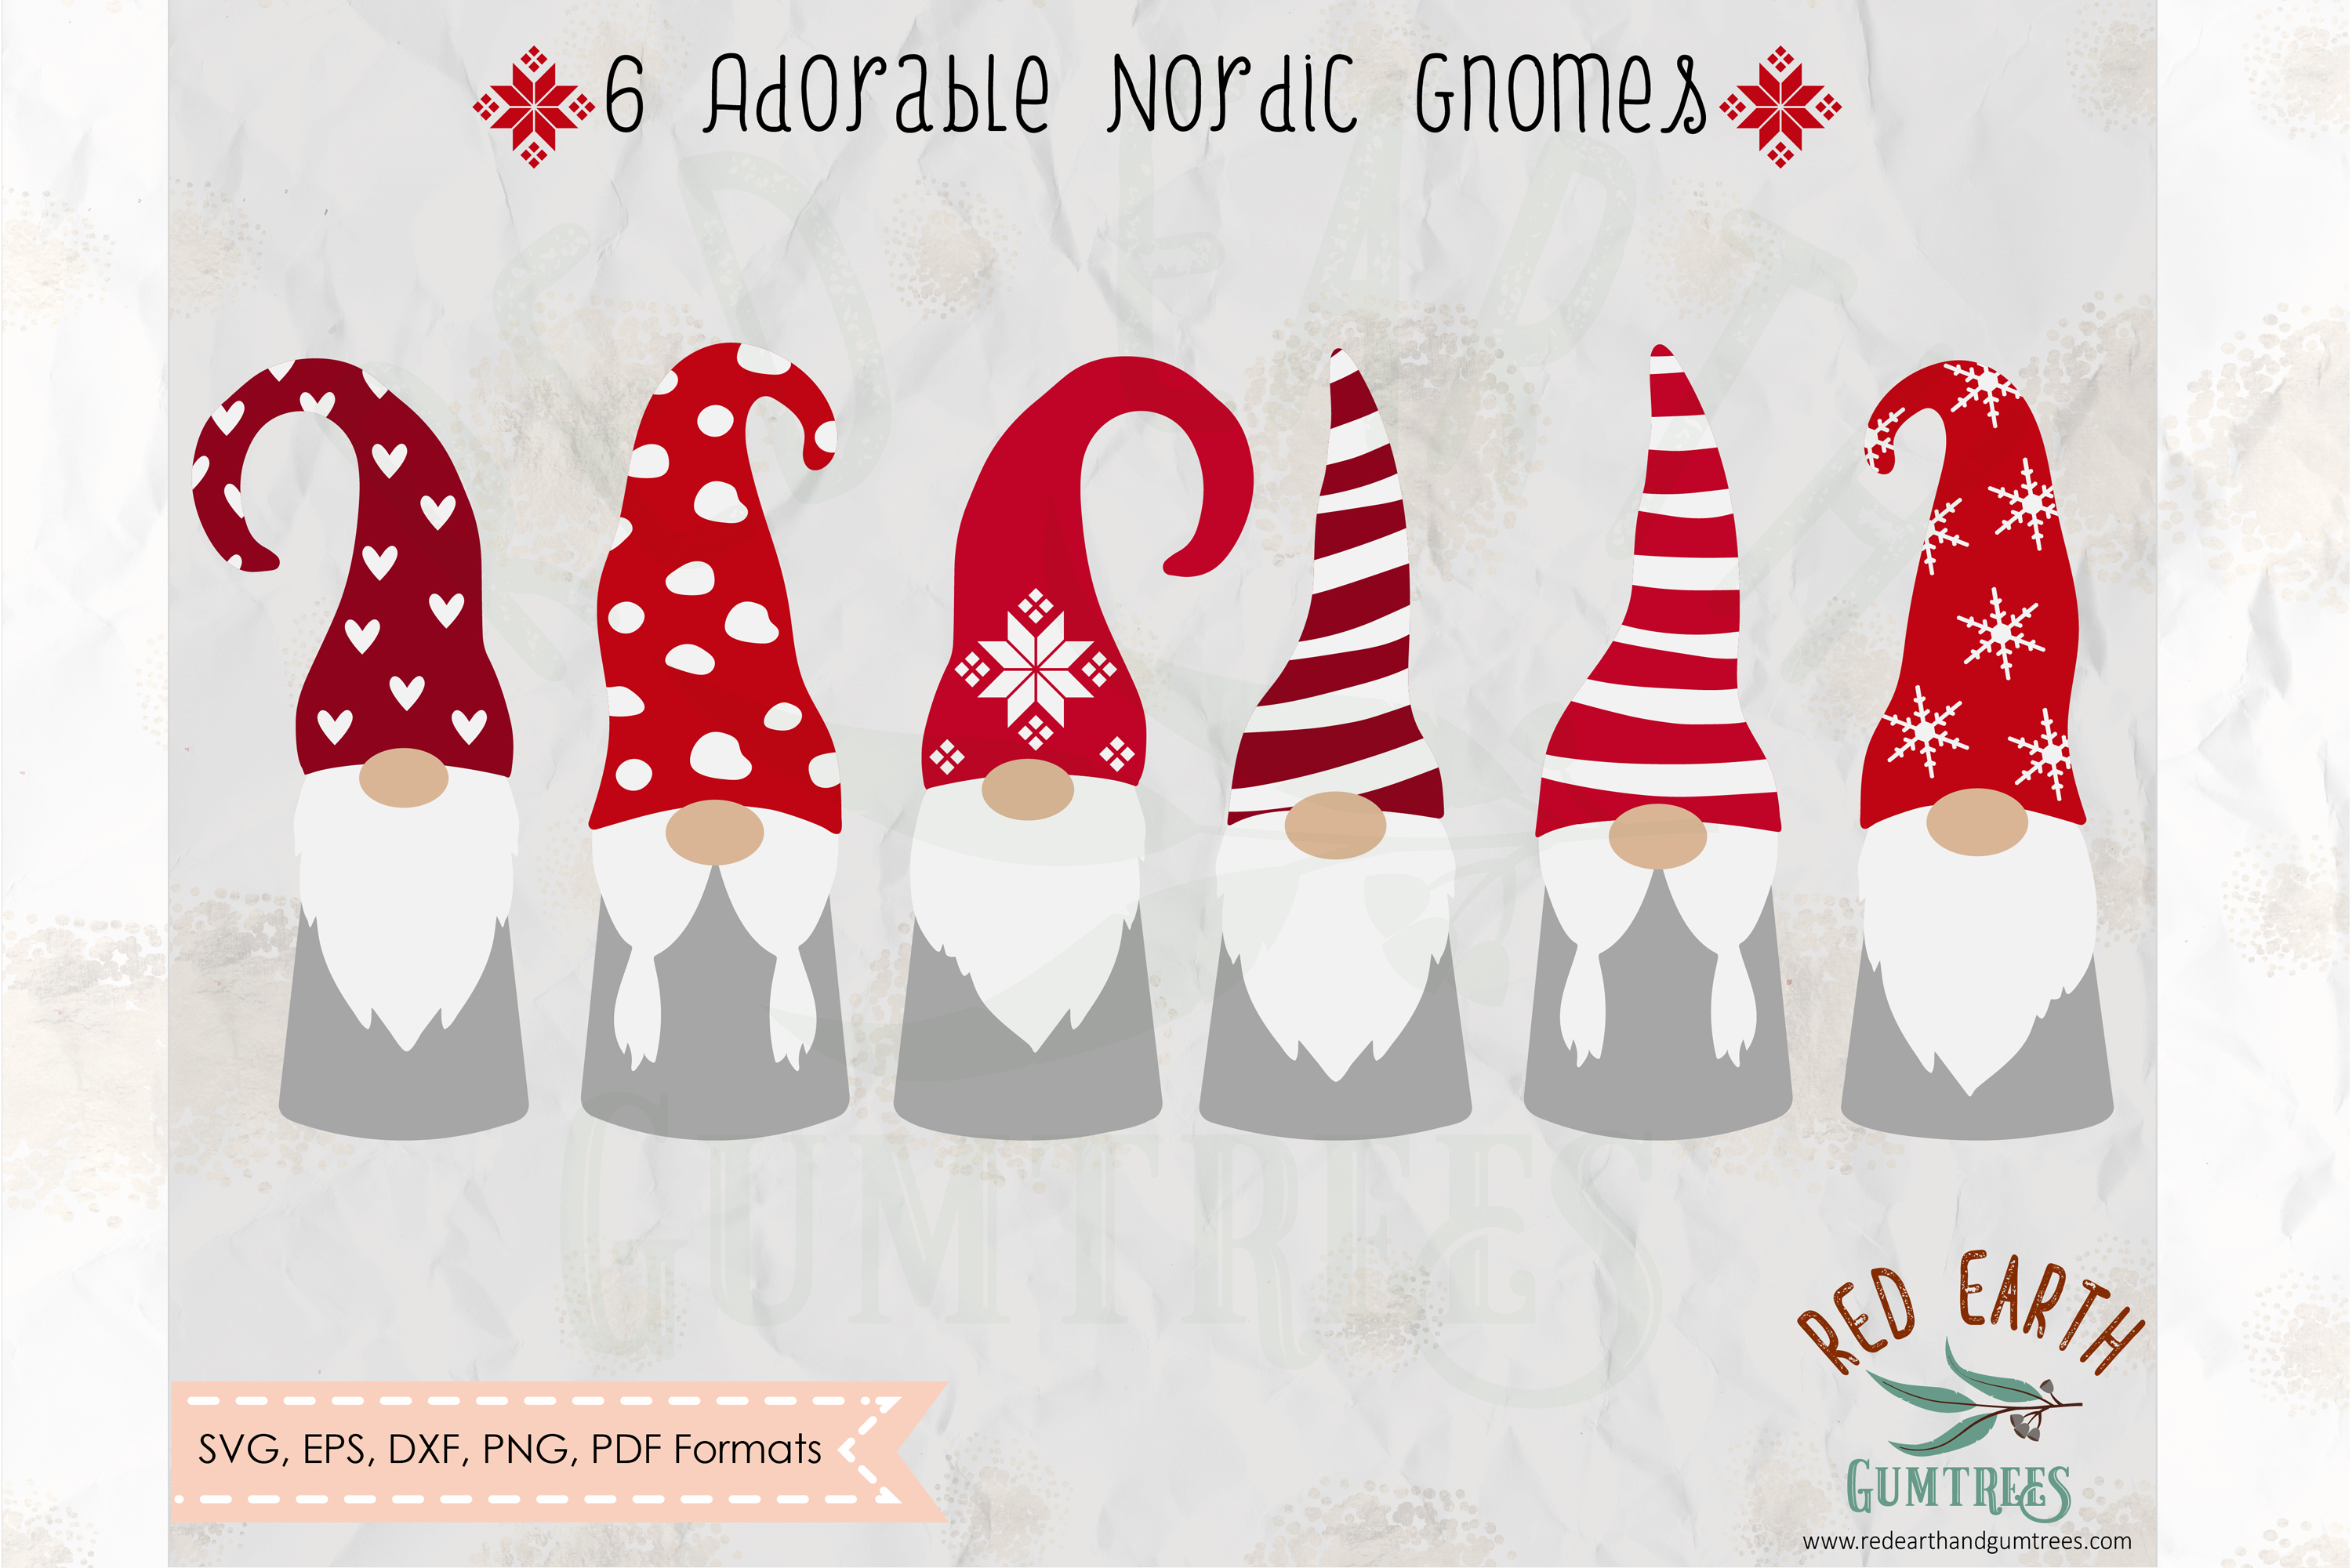 Download Free Christmas Gnome Graphic By Redearth And Gumtrees Creative Fabrica for Cricut Explore, Silhouette and other cutting machines.